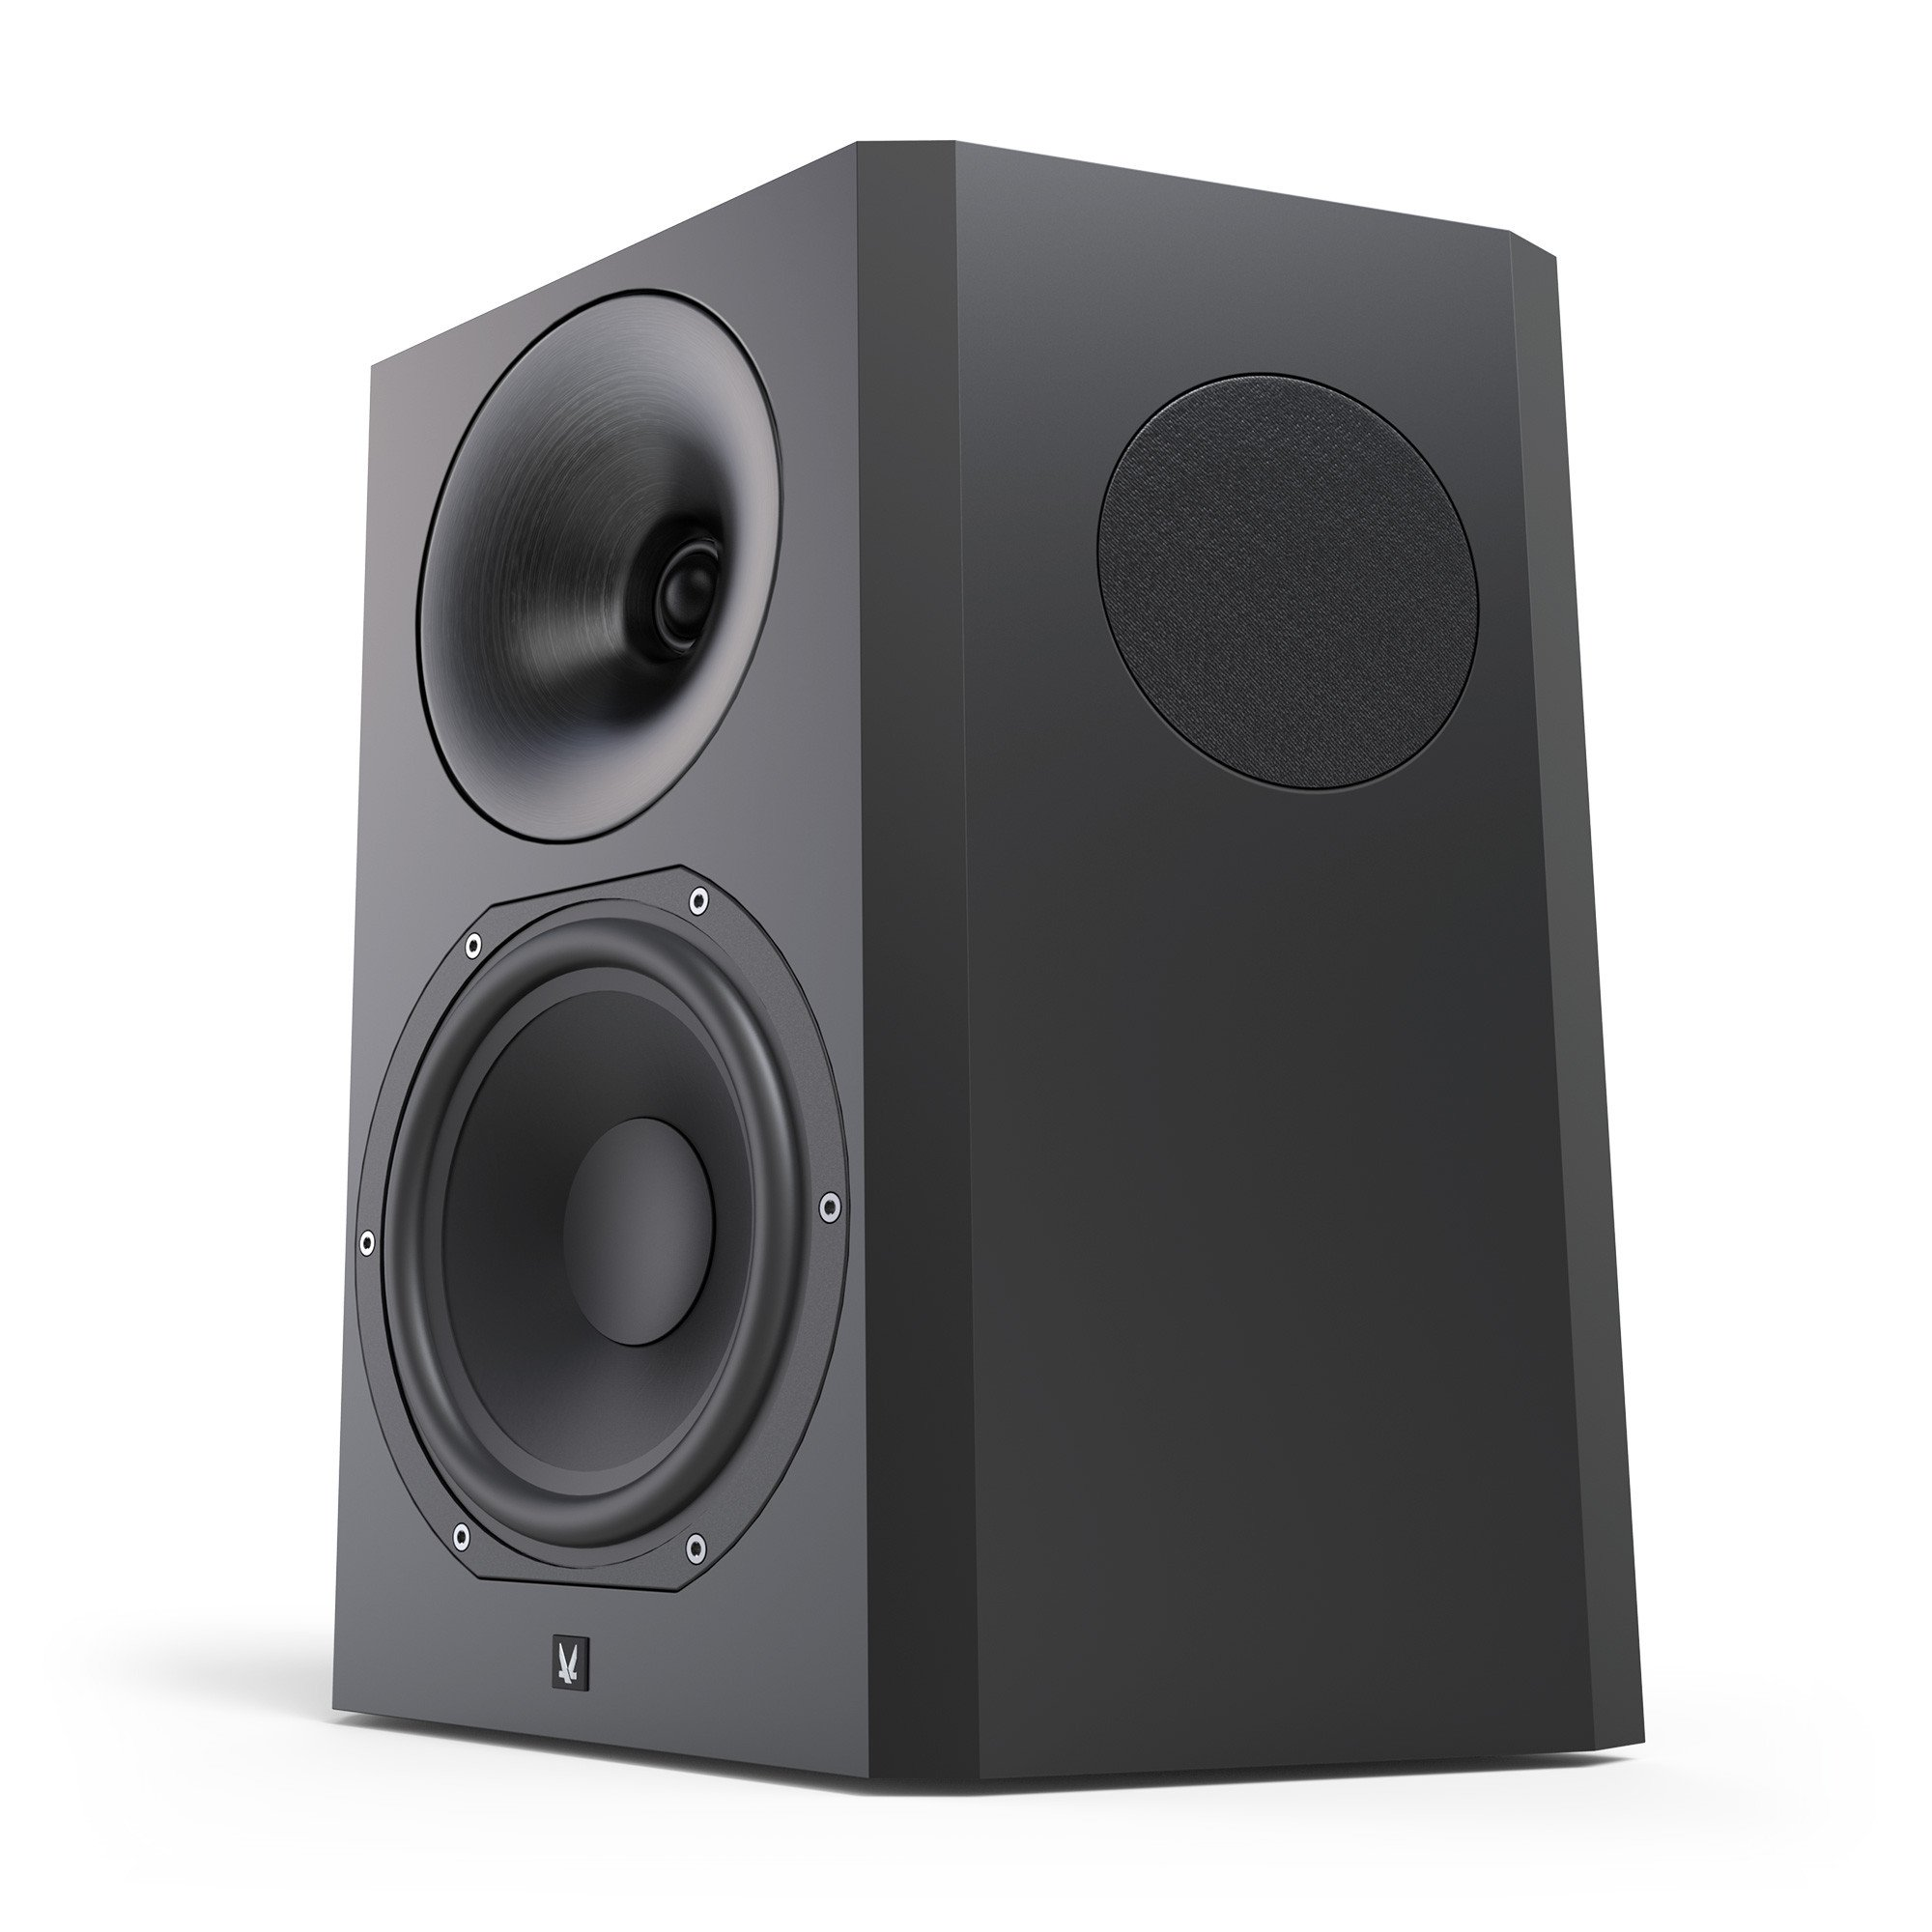 Product Finder Thx Amplifier Mono Subwoofer Bass Speaker Amp W Cable Wiring Kit Ebay Arendal Sound